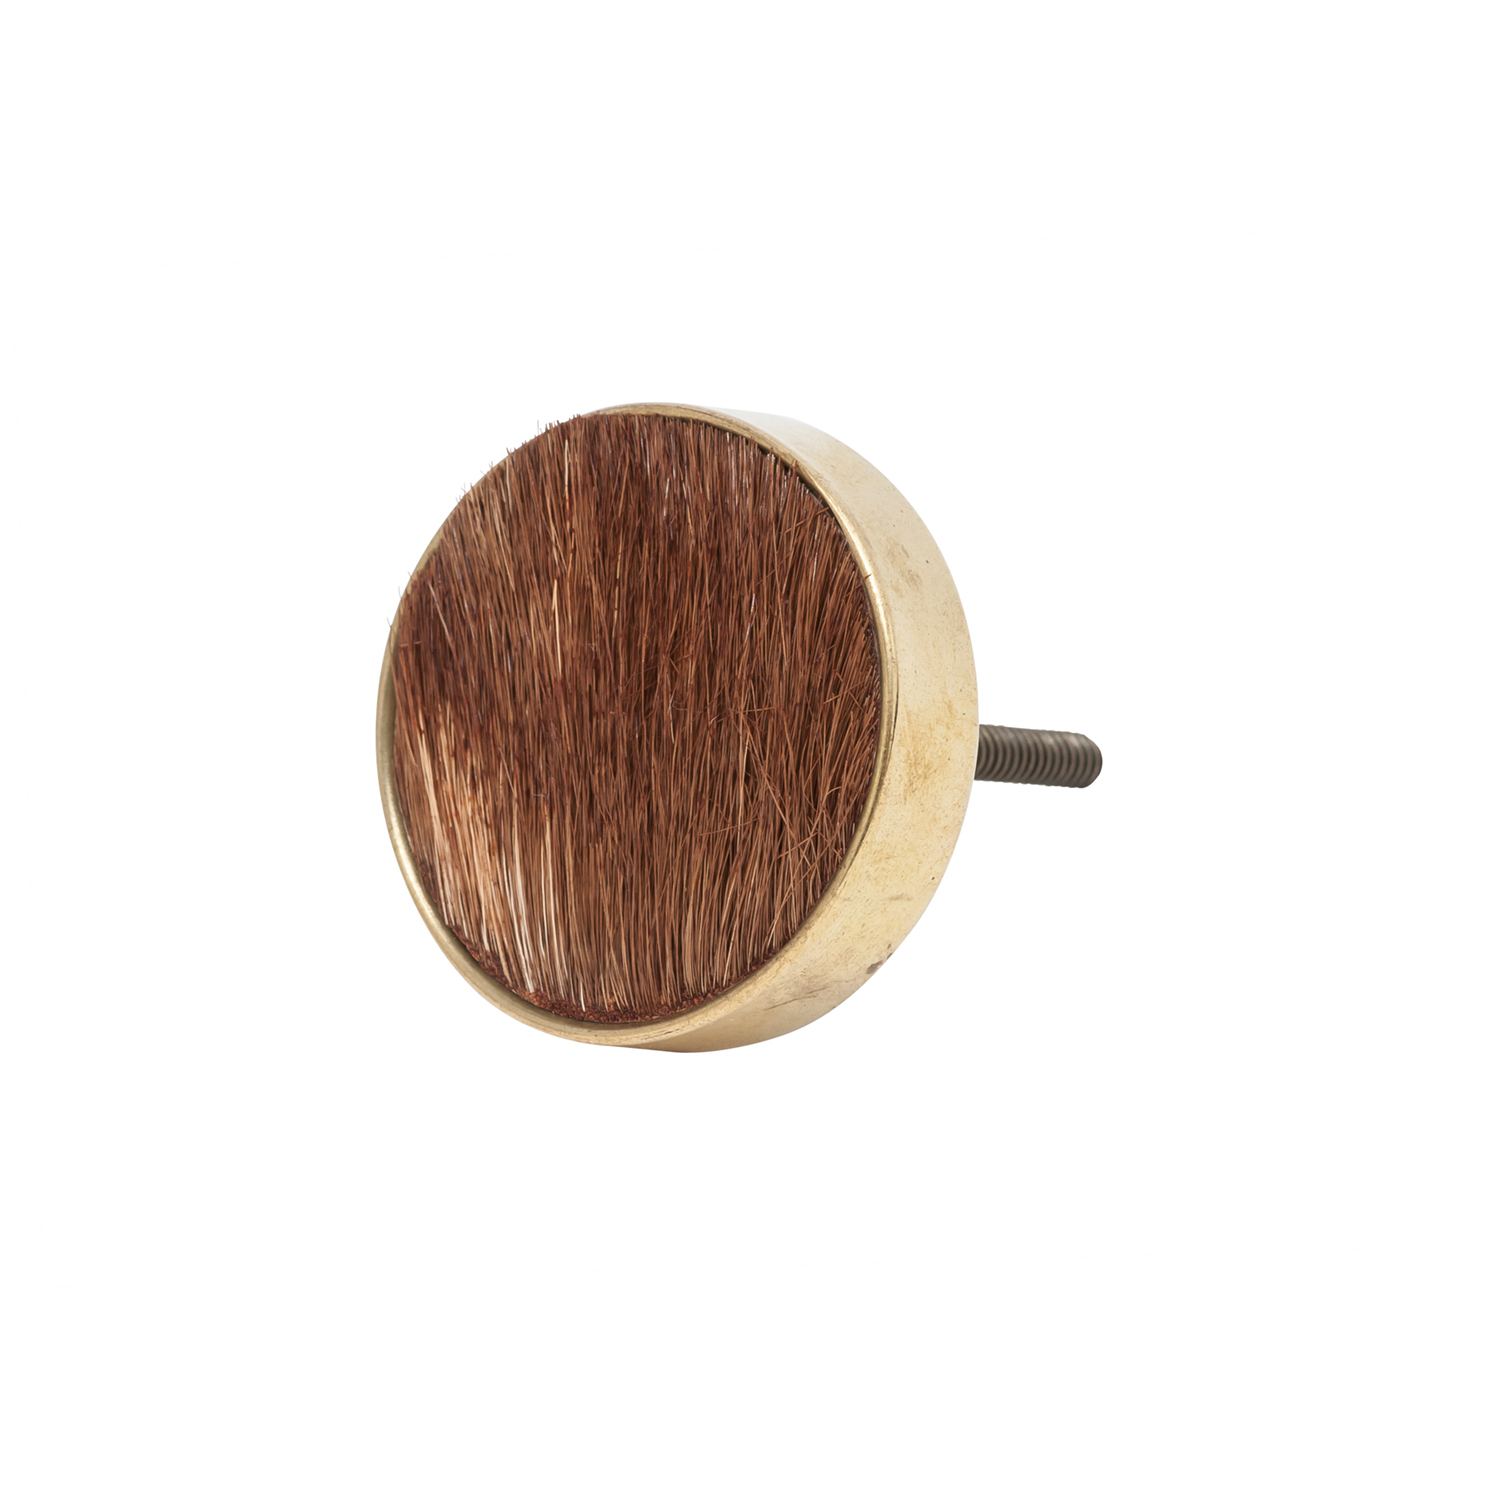 General Eclectic: Hide Knob Brown image